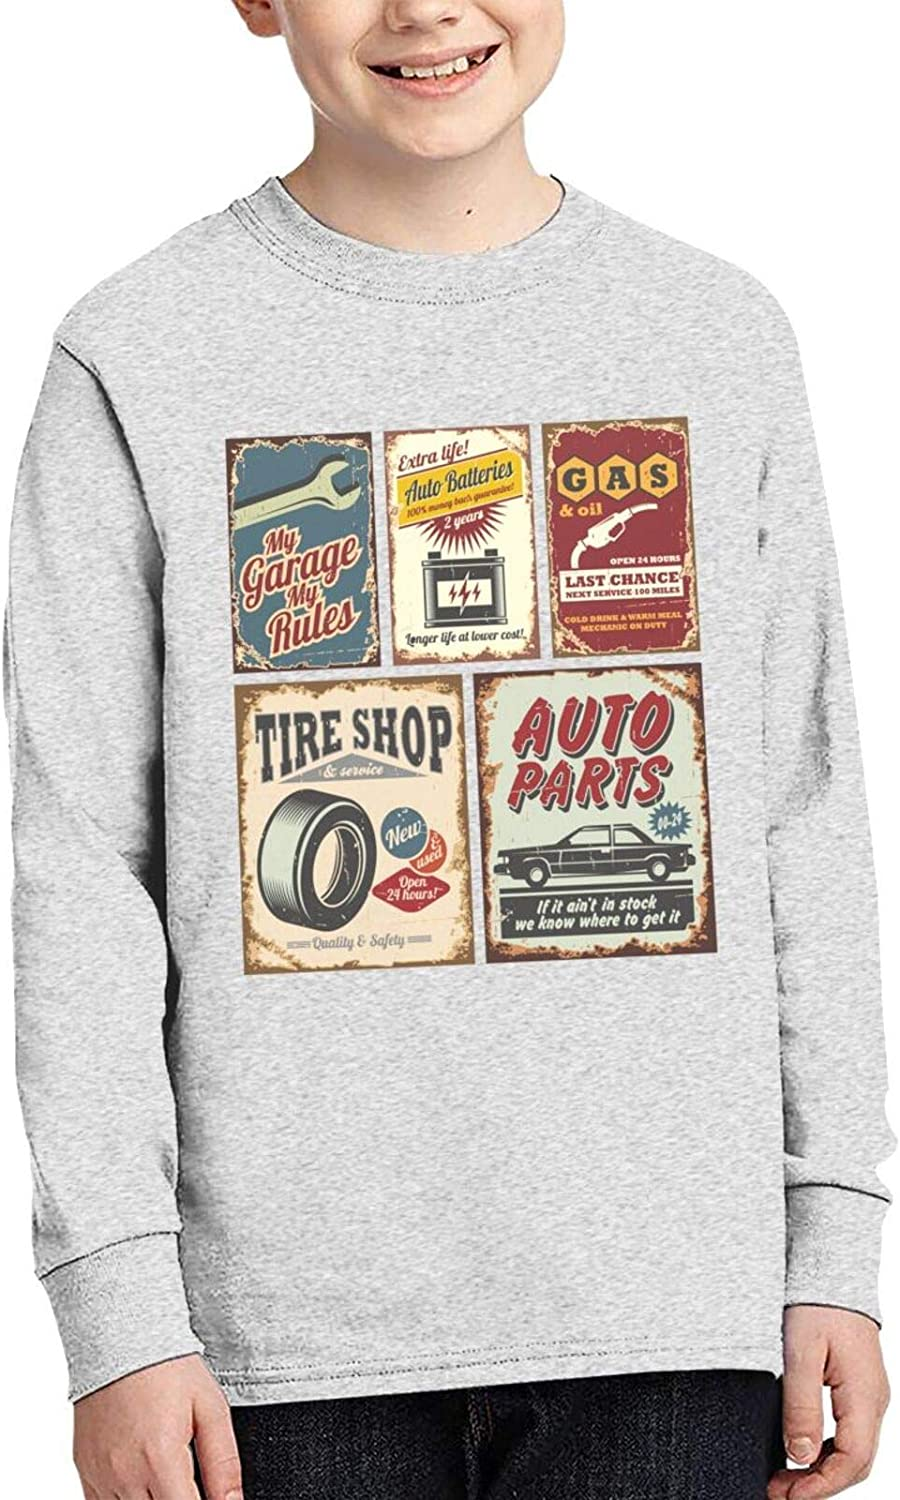 Vintage Car Service Charlotte Mall Sweater Fashion and Comfortable S Save money Children's